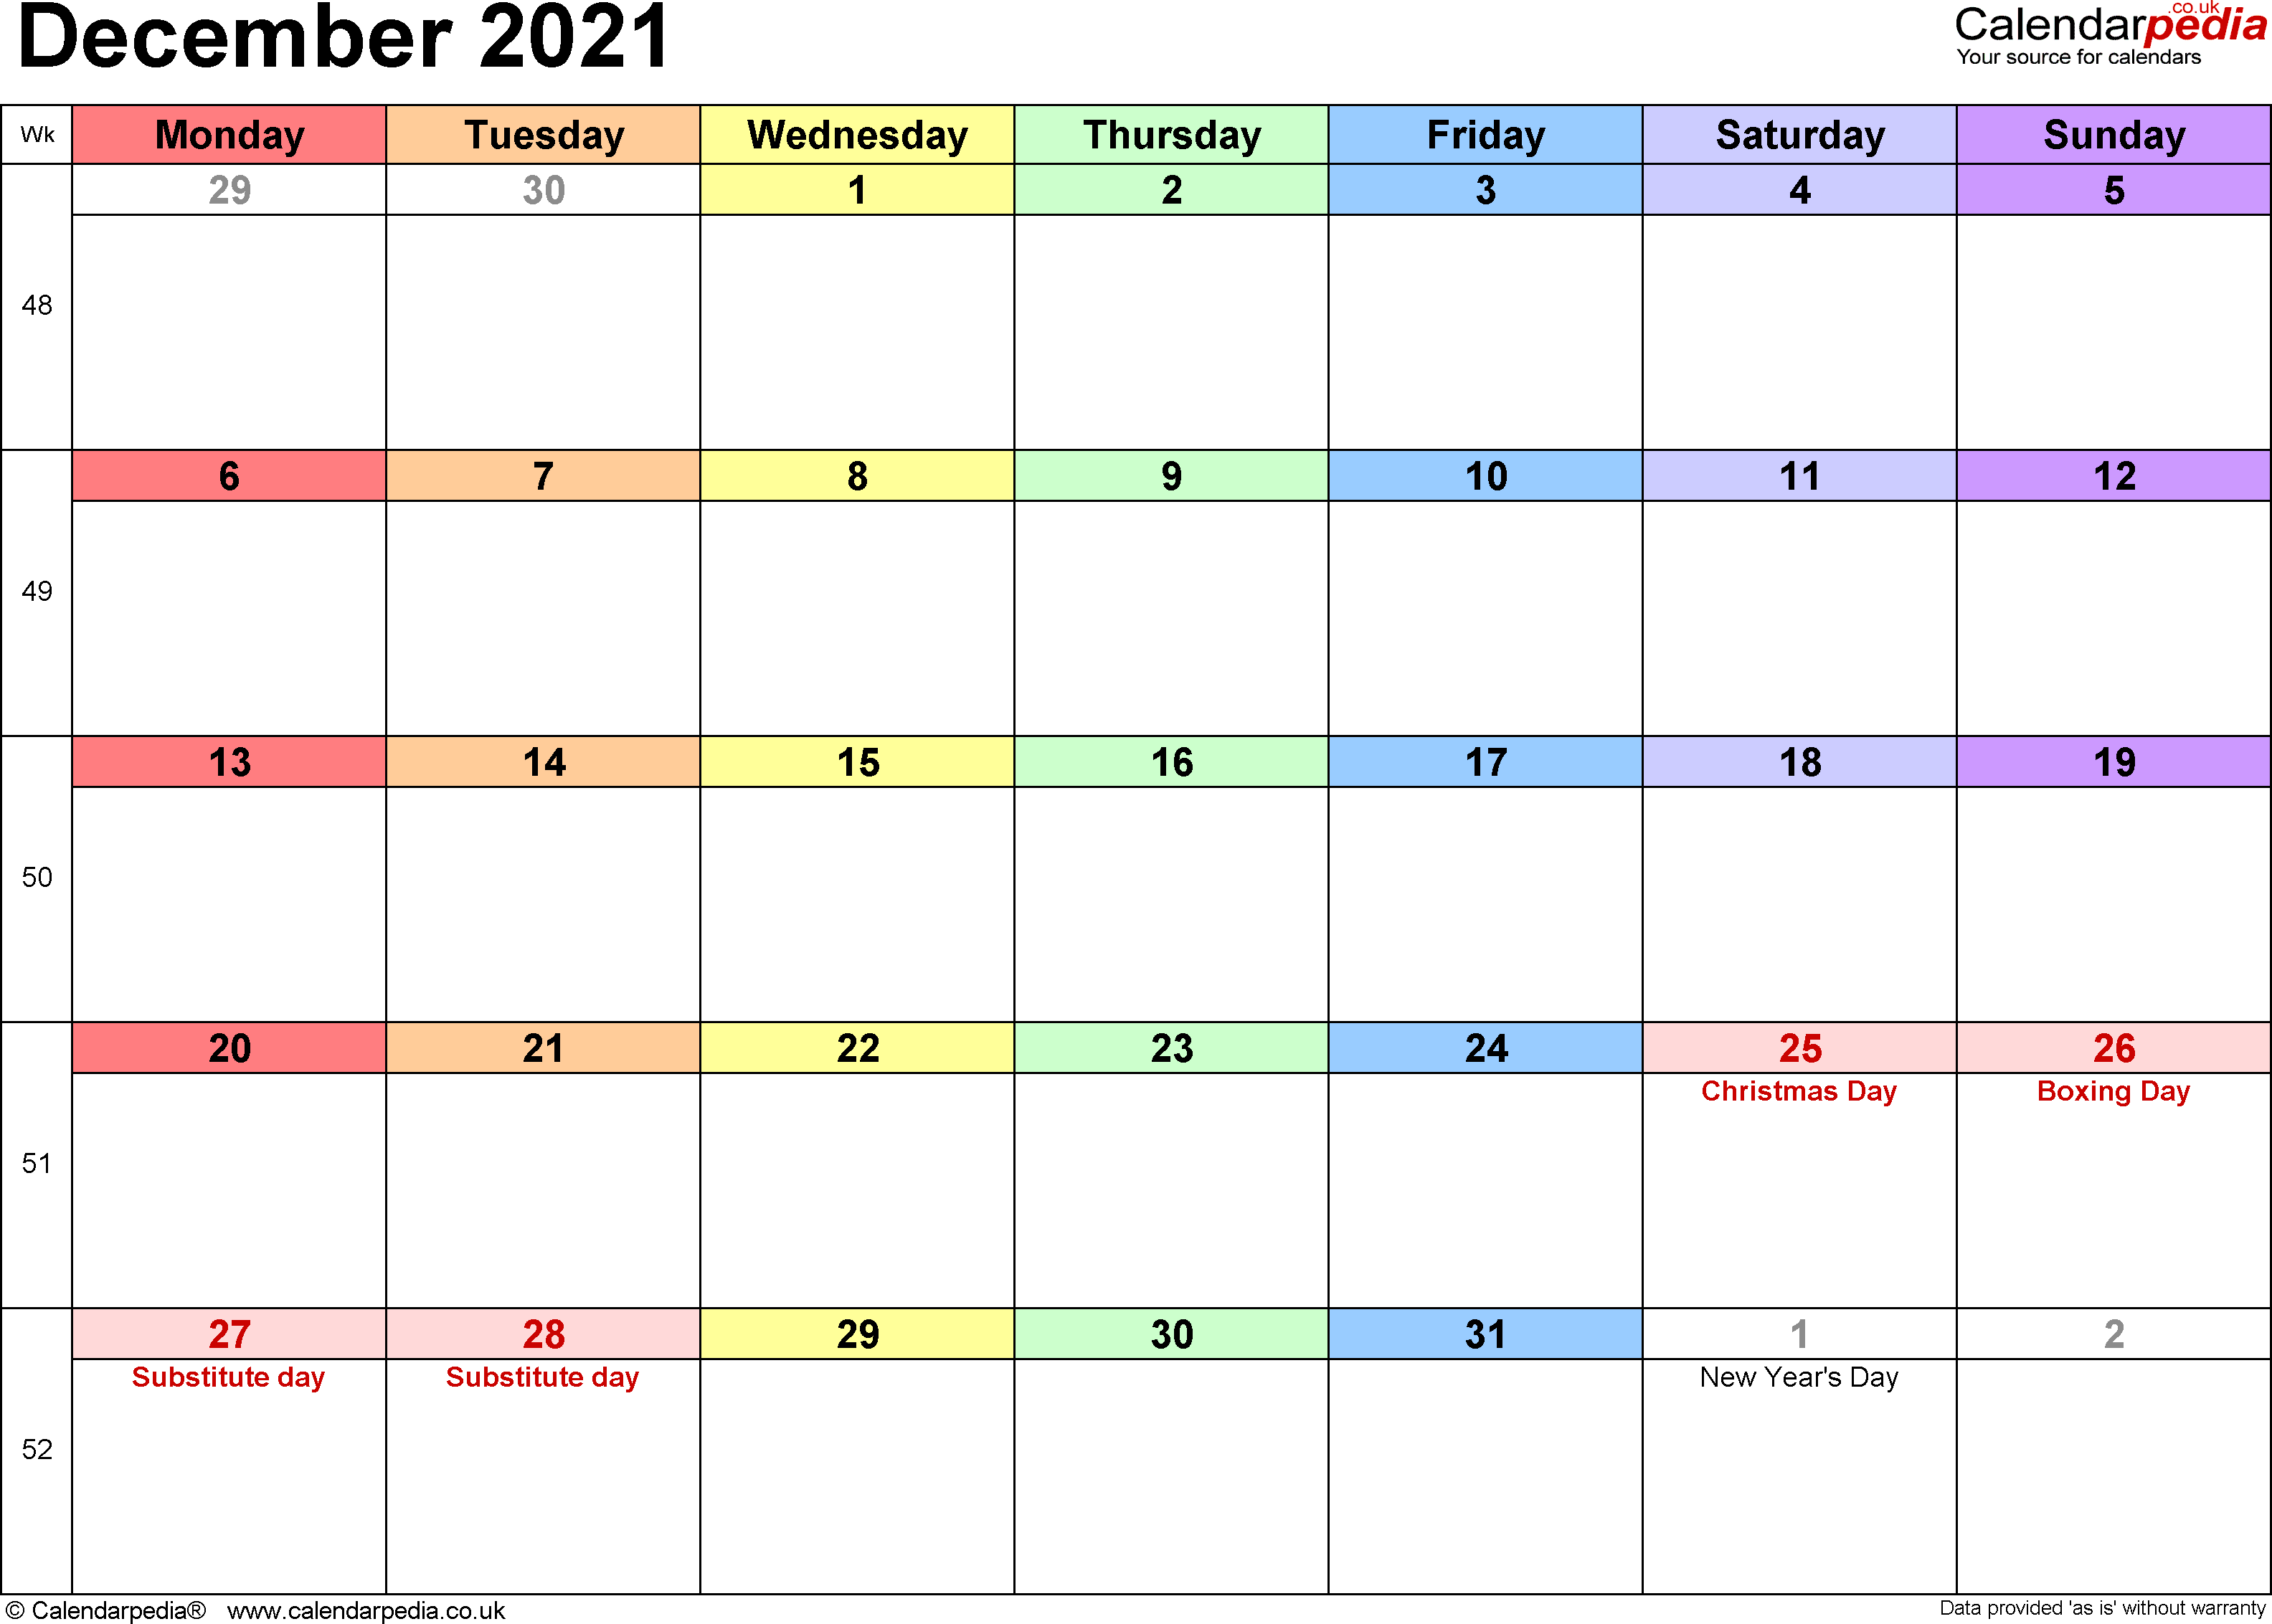 Calendar December 2021, landscape orientation, 1 page, with UK bank holidays and week numbers